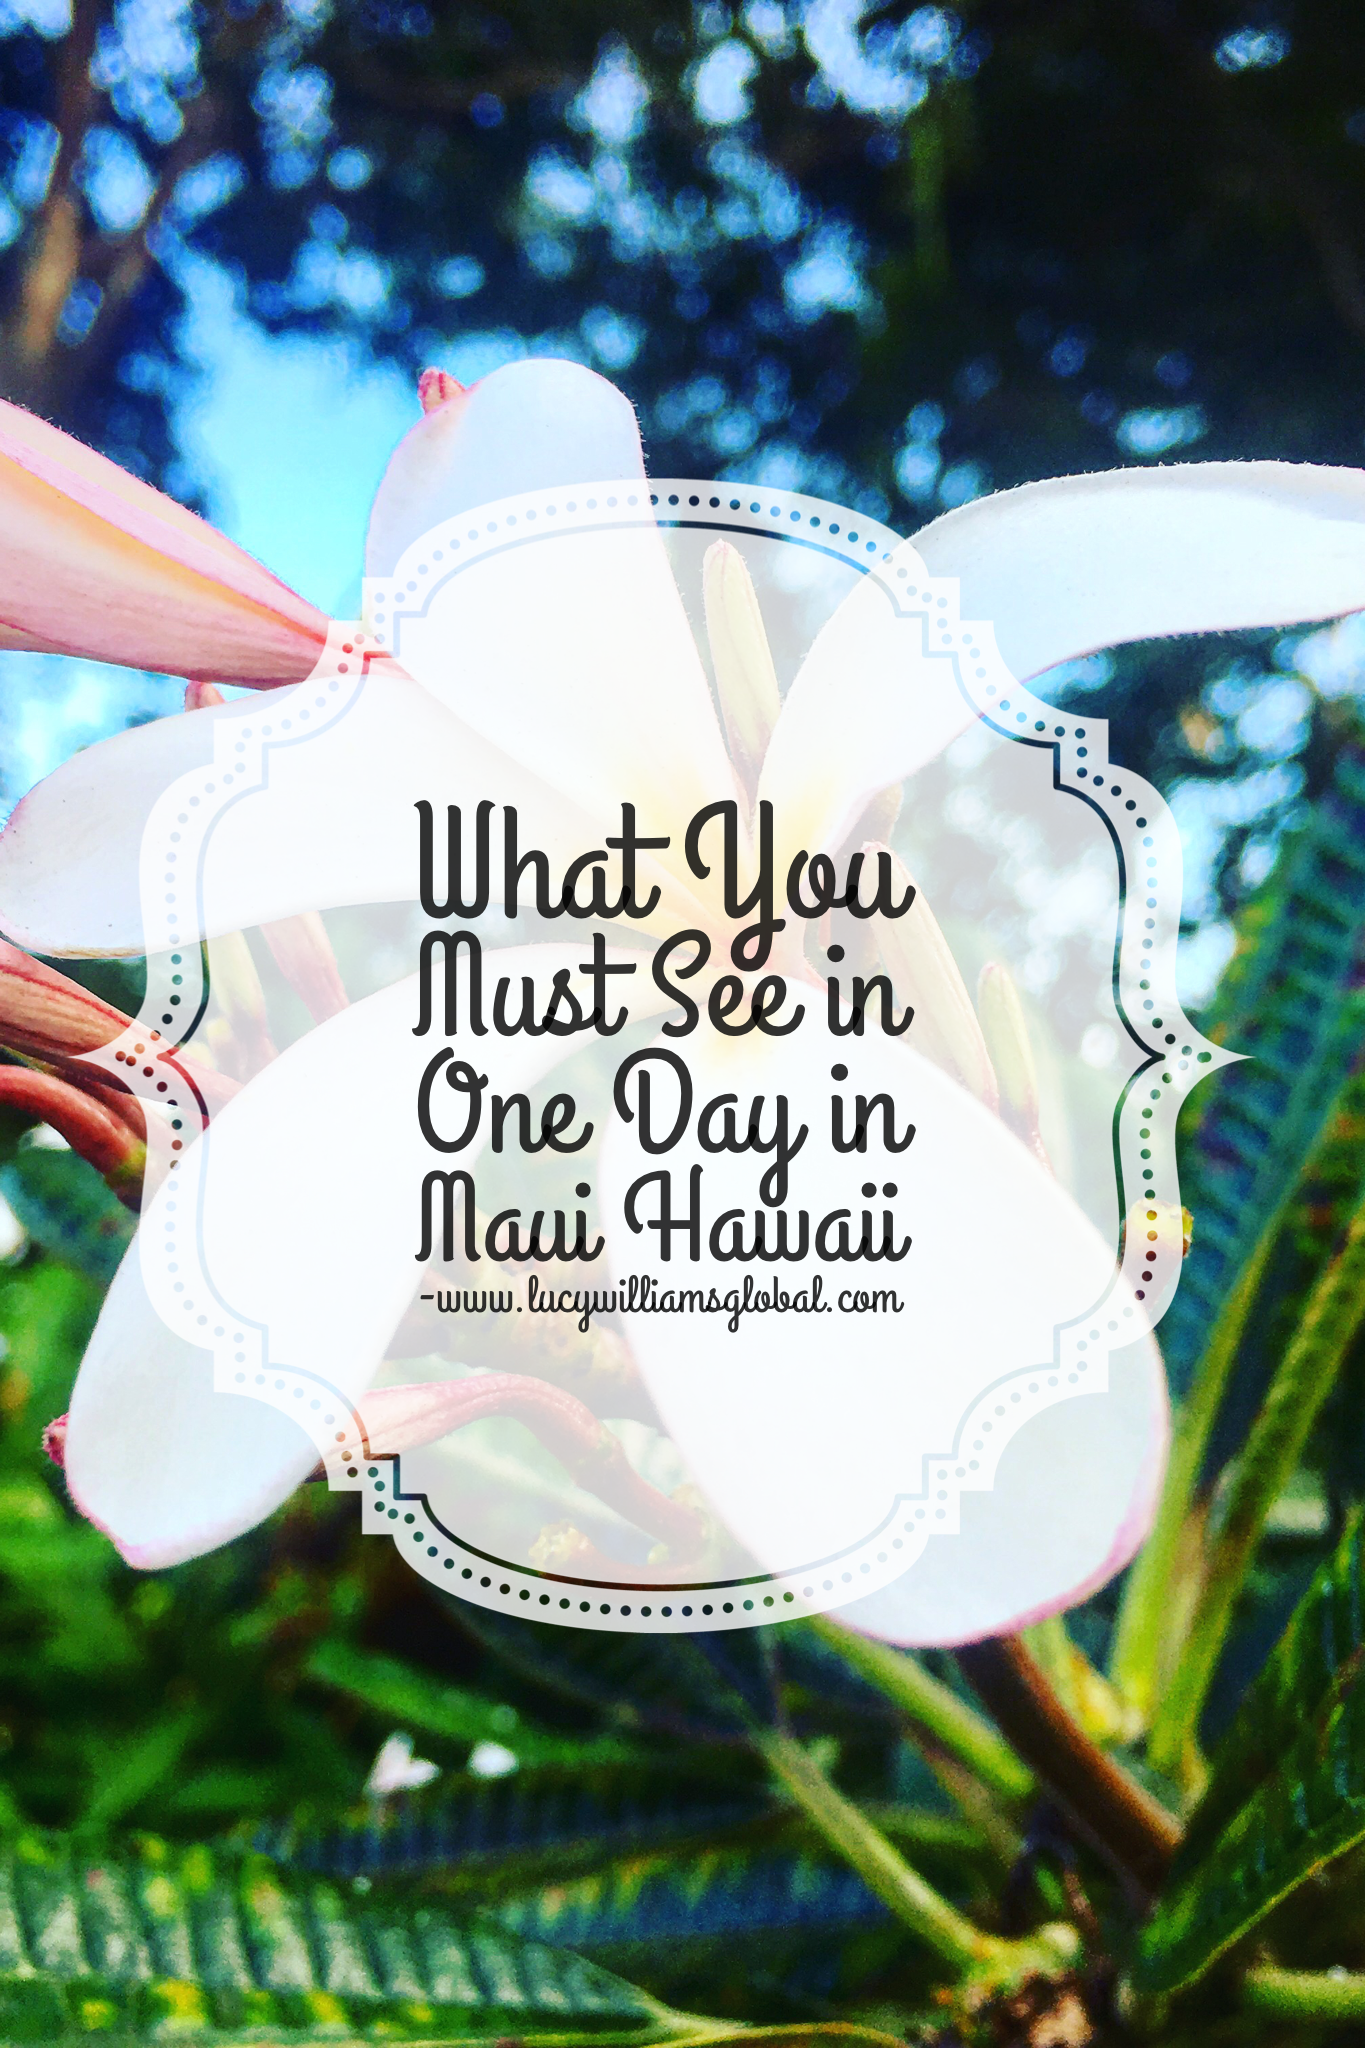 What You Must See in One Day in Maui Hawaii